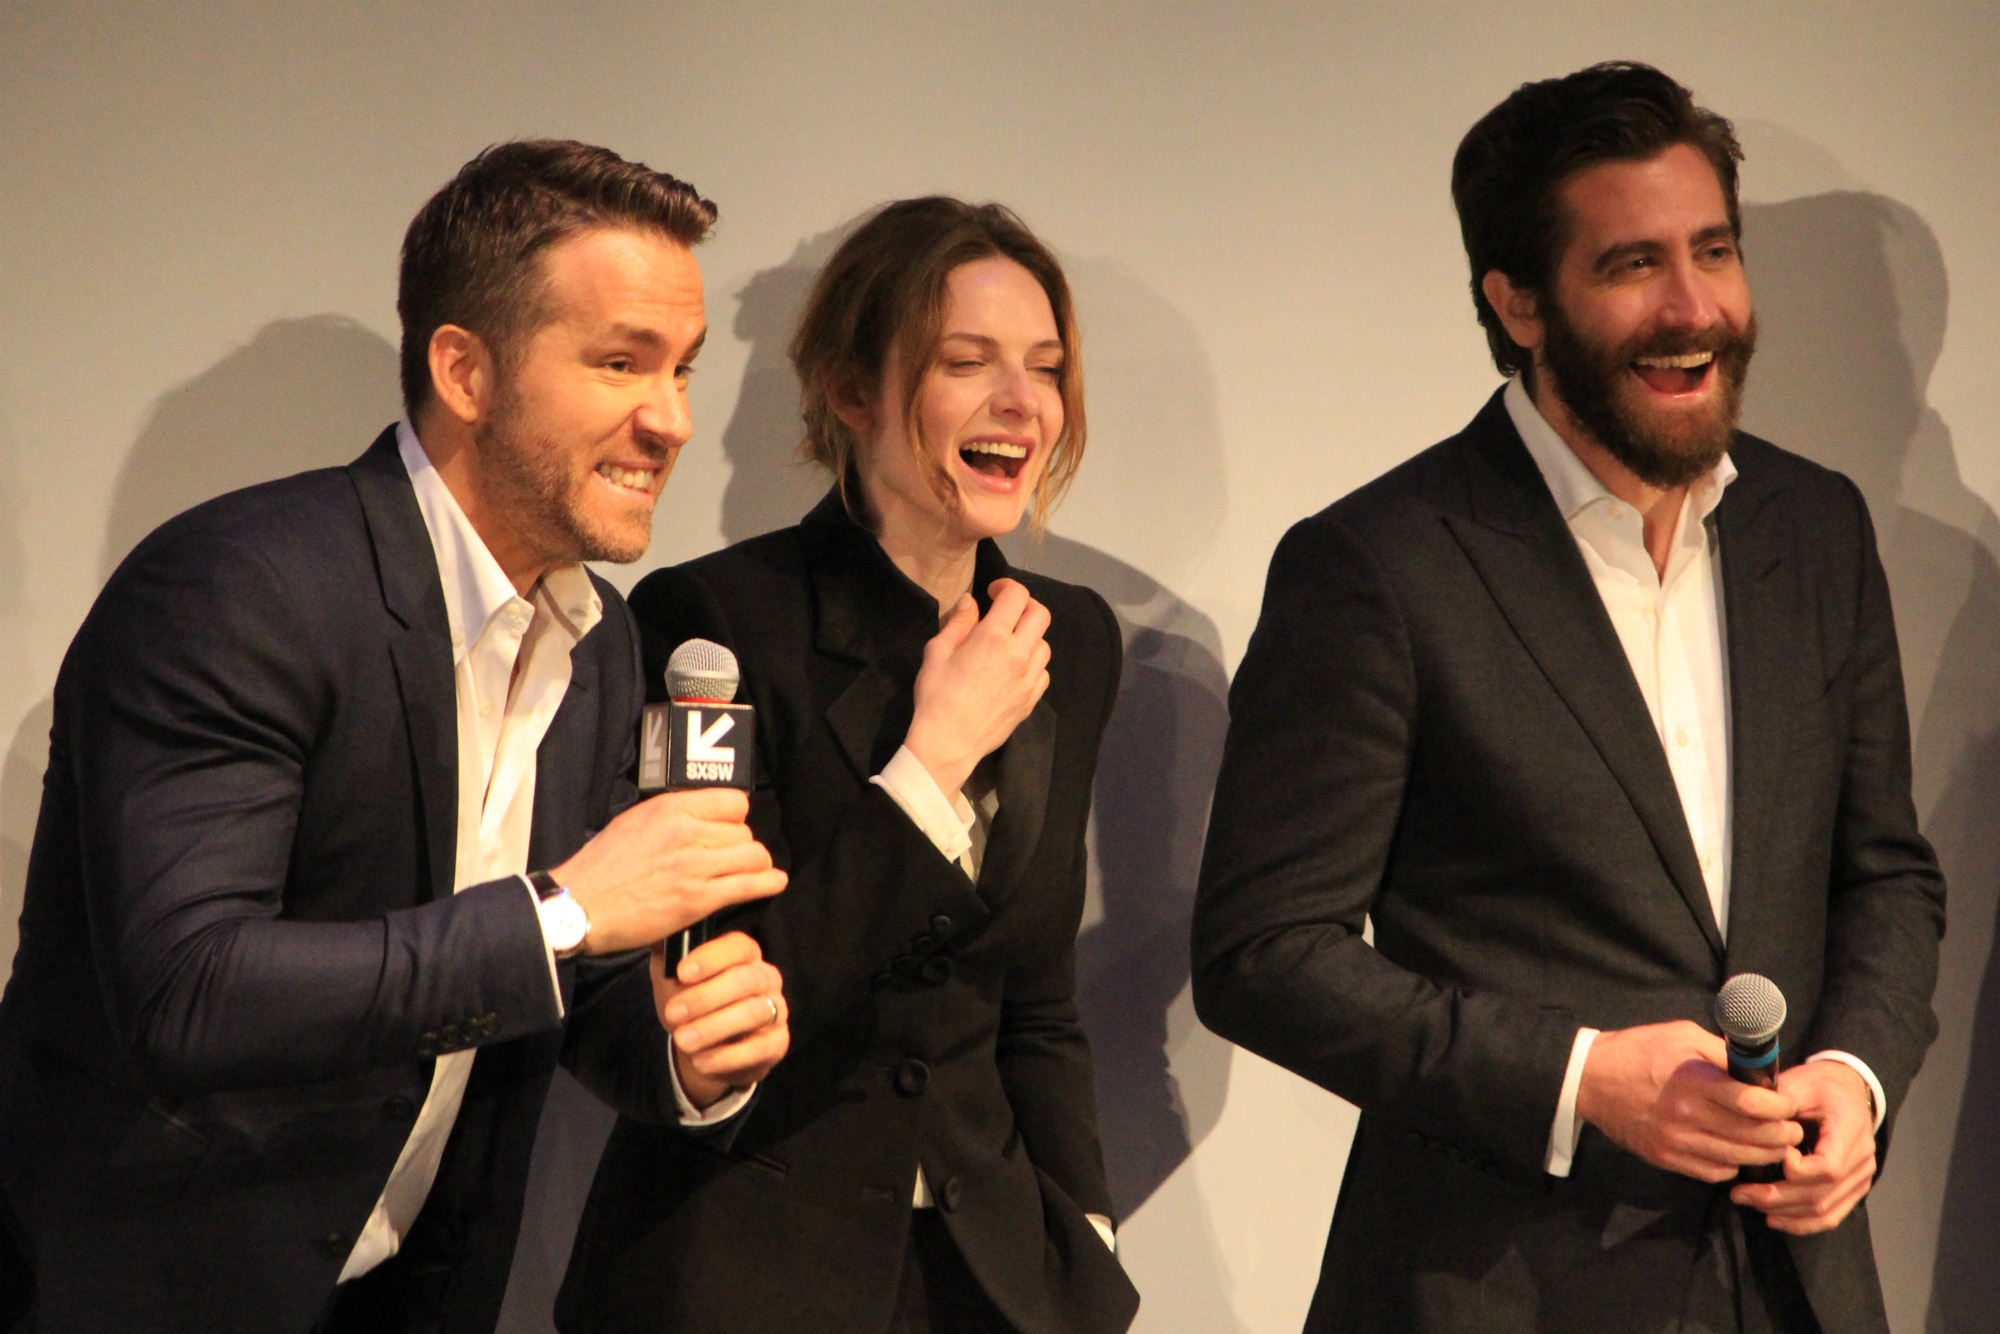 Ryan Reynolds, Rebecca Ferguson, and Jake Gyllenhaal // Life // Photo by Heather Kaplan